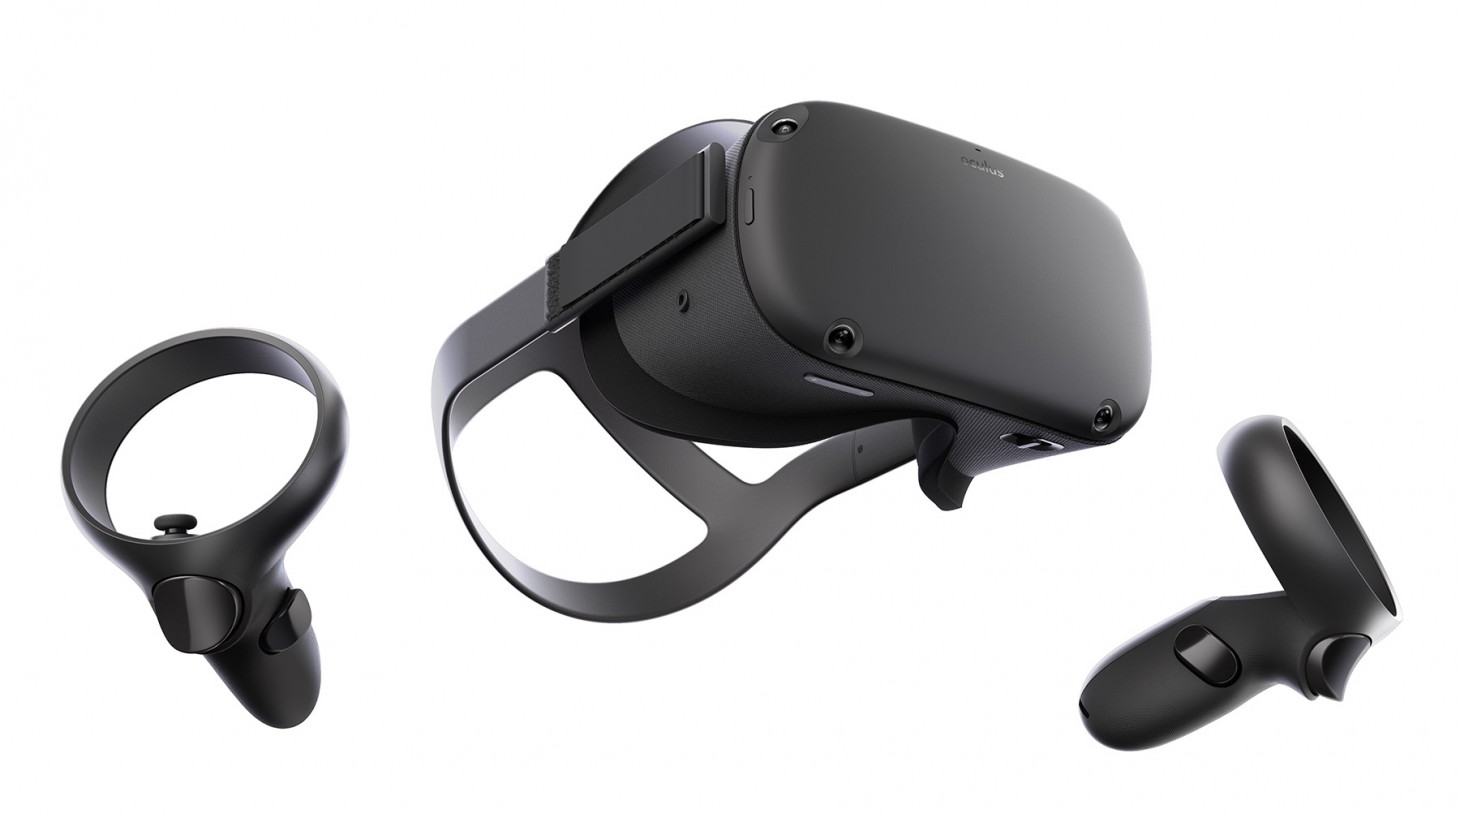 Save $50 On The Oculus Rift S - Amazon Black Friday 2019 Deals